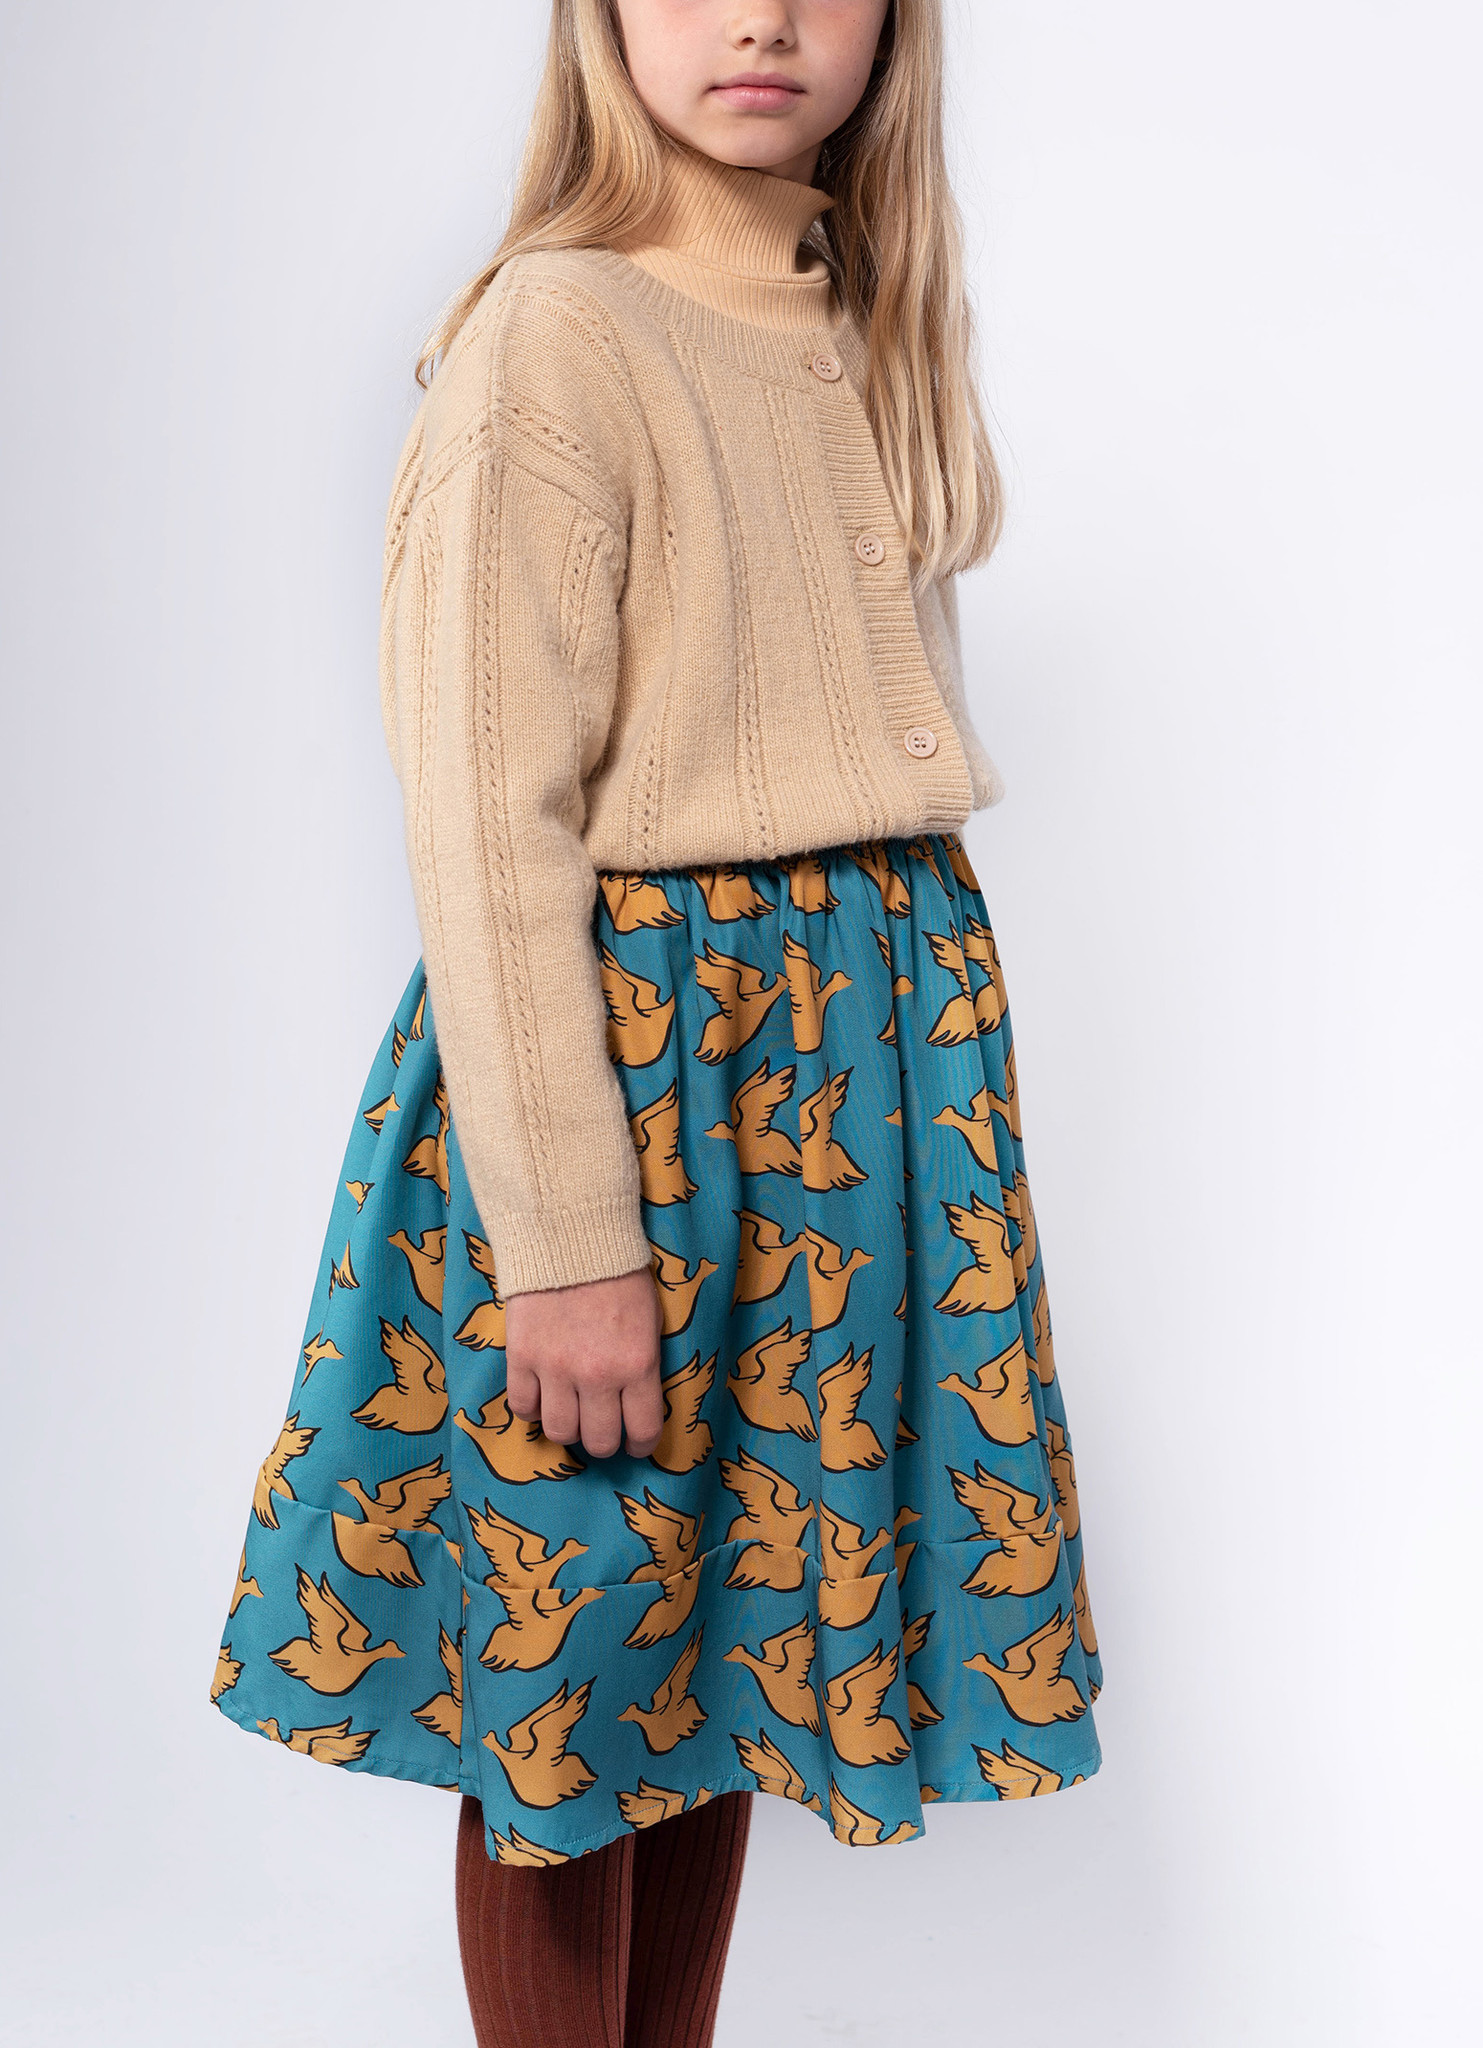 Skirt - The Bird-2